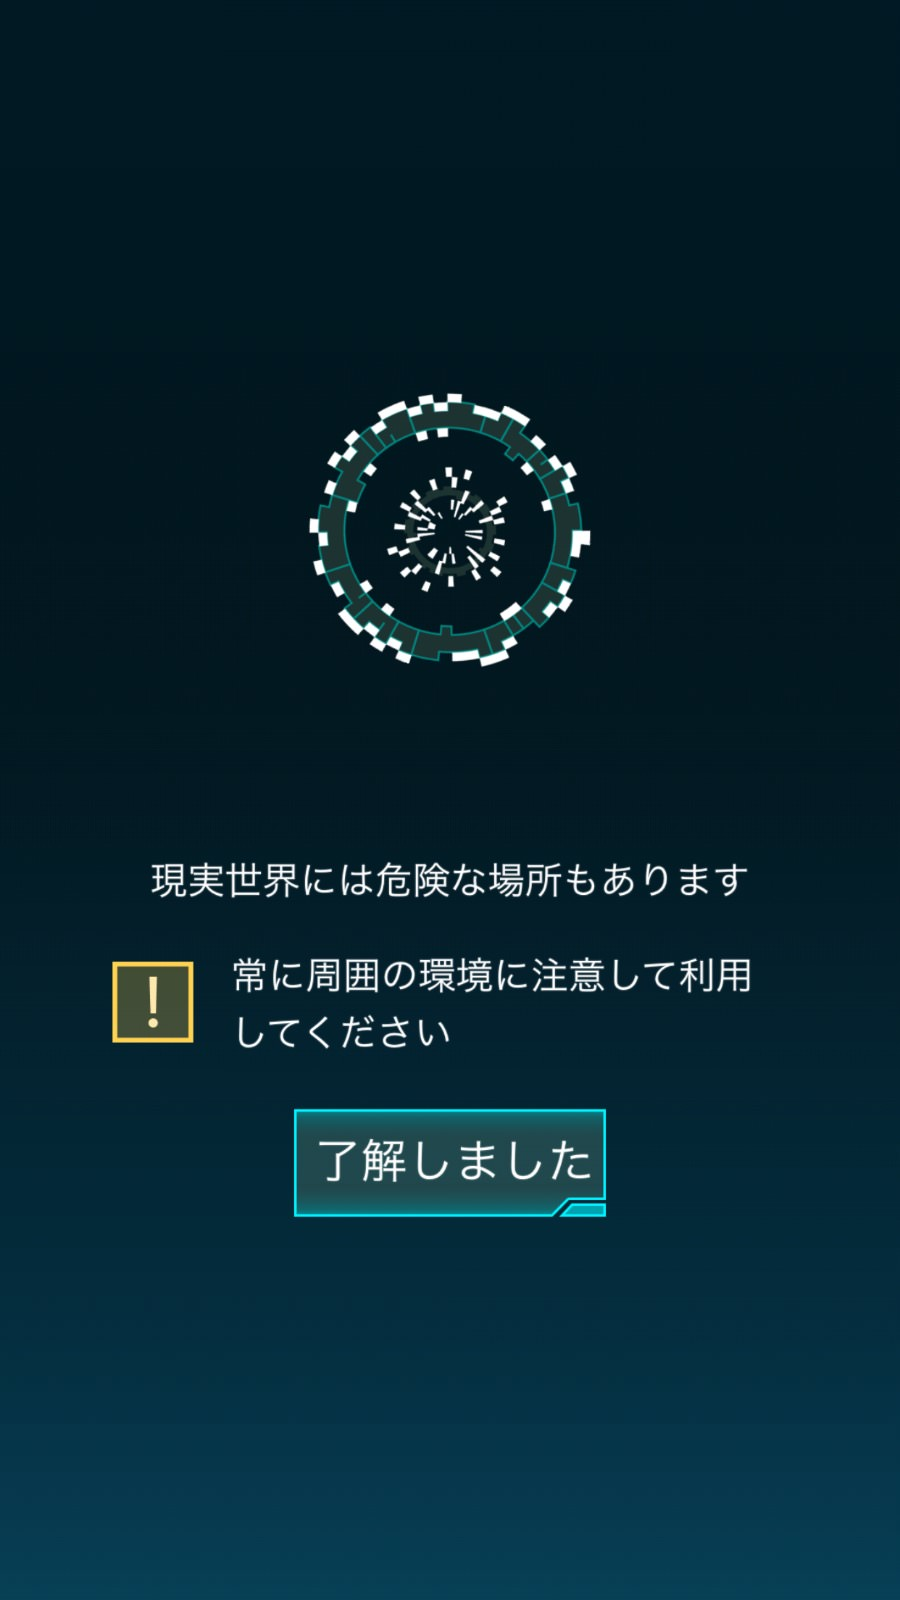 Ingress update 5566